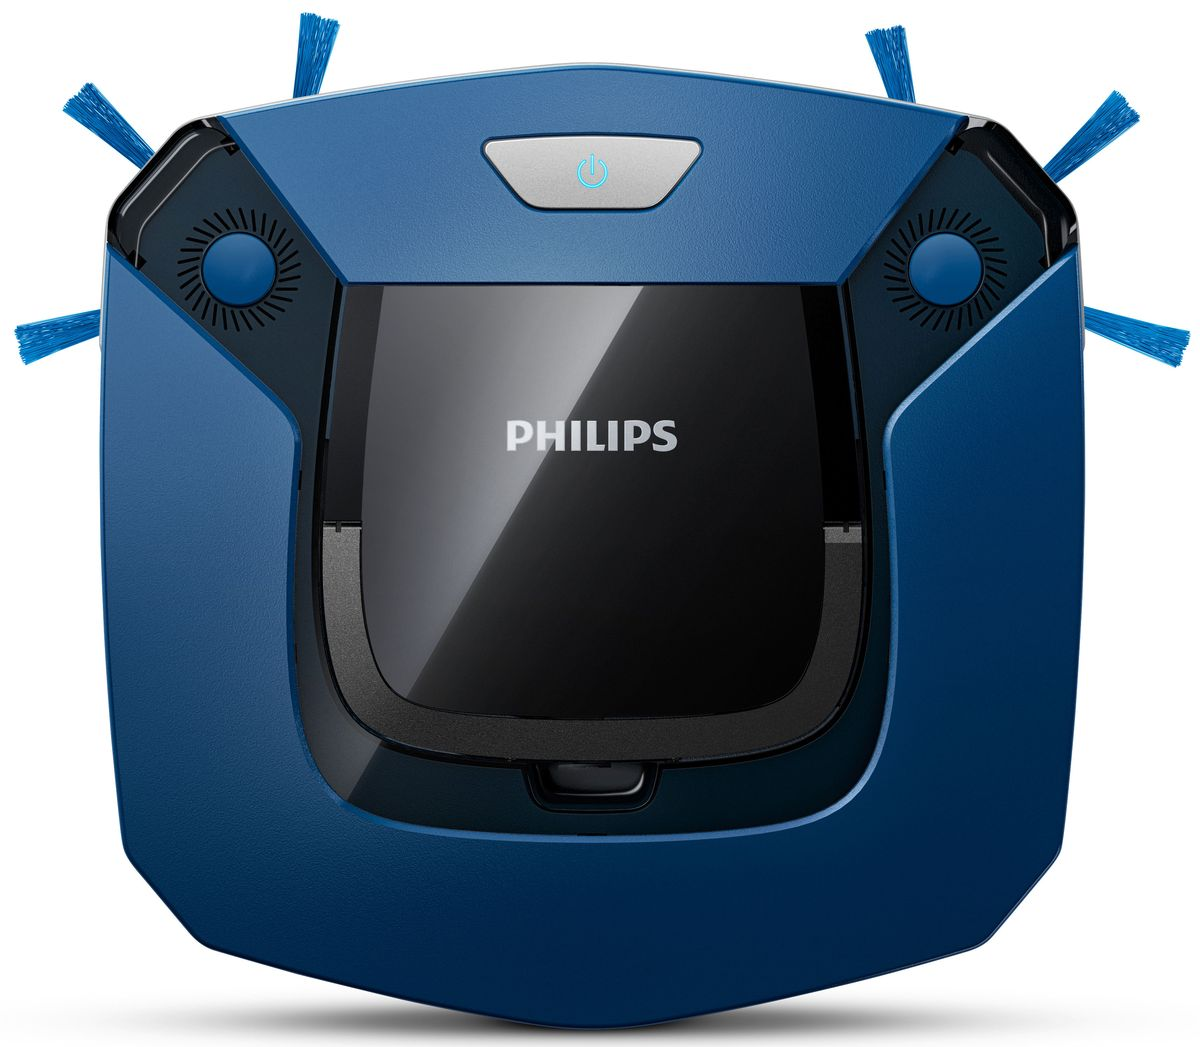 Philips SmartPro Easy FC8792/01 робот-пылесос philips smartpro active fc8822 01 робот пылесос